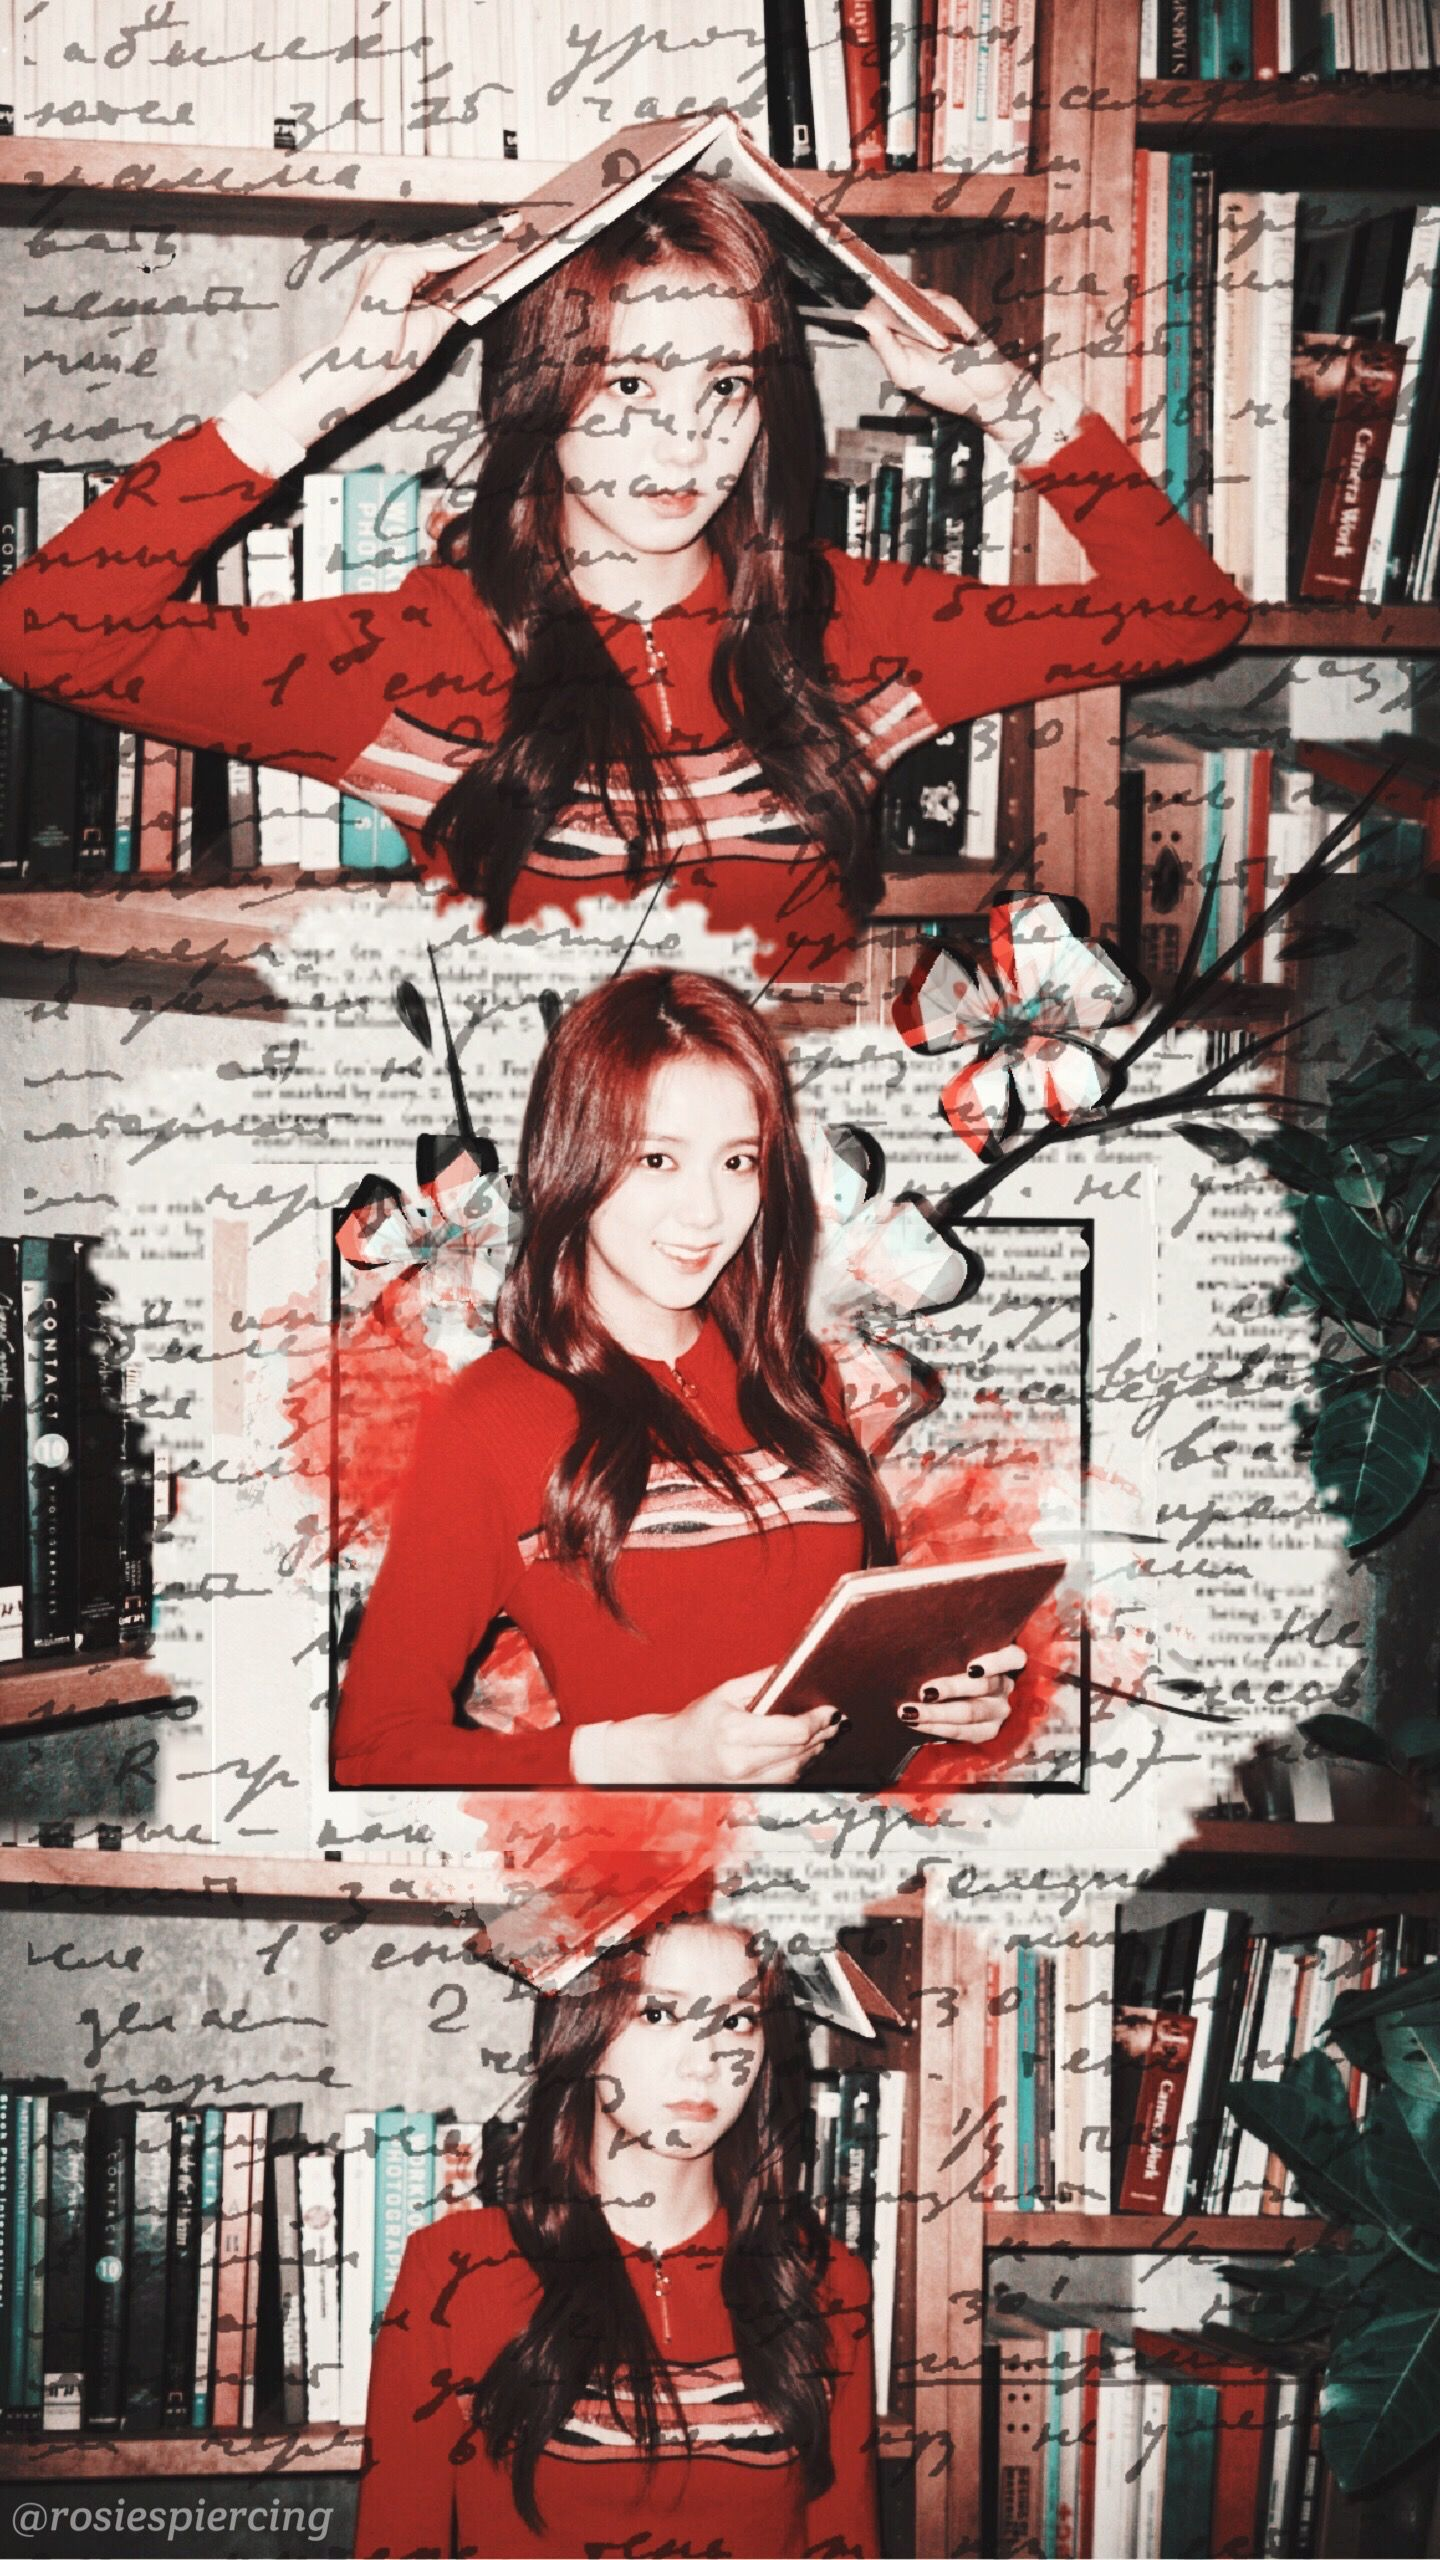 jisoo kimjisoo blackpink blackpinkwallpaper edit